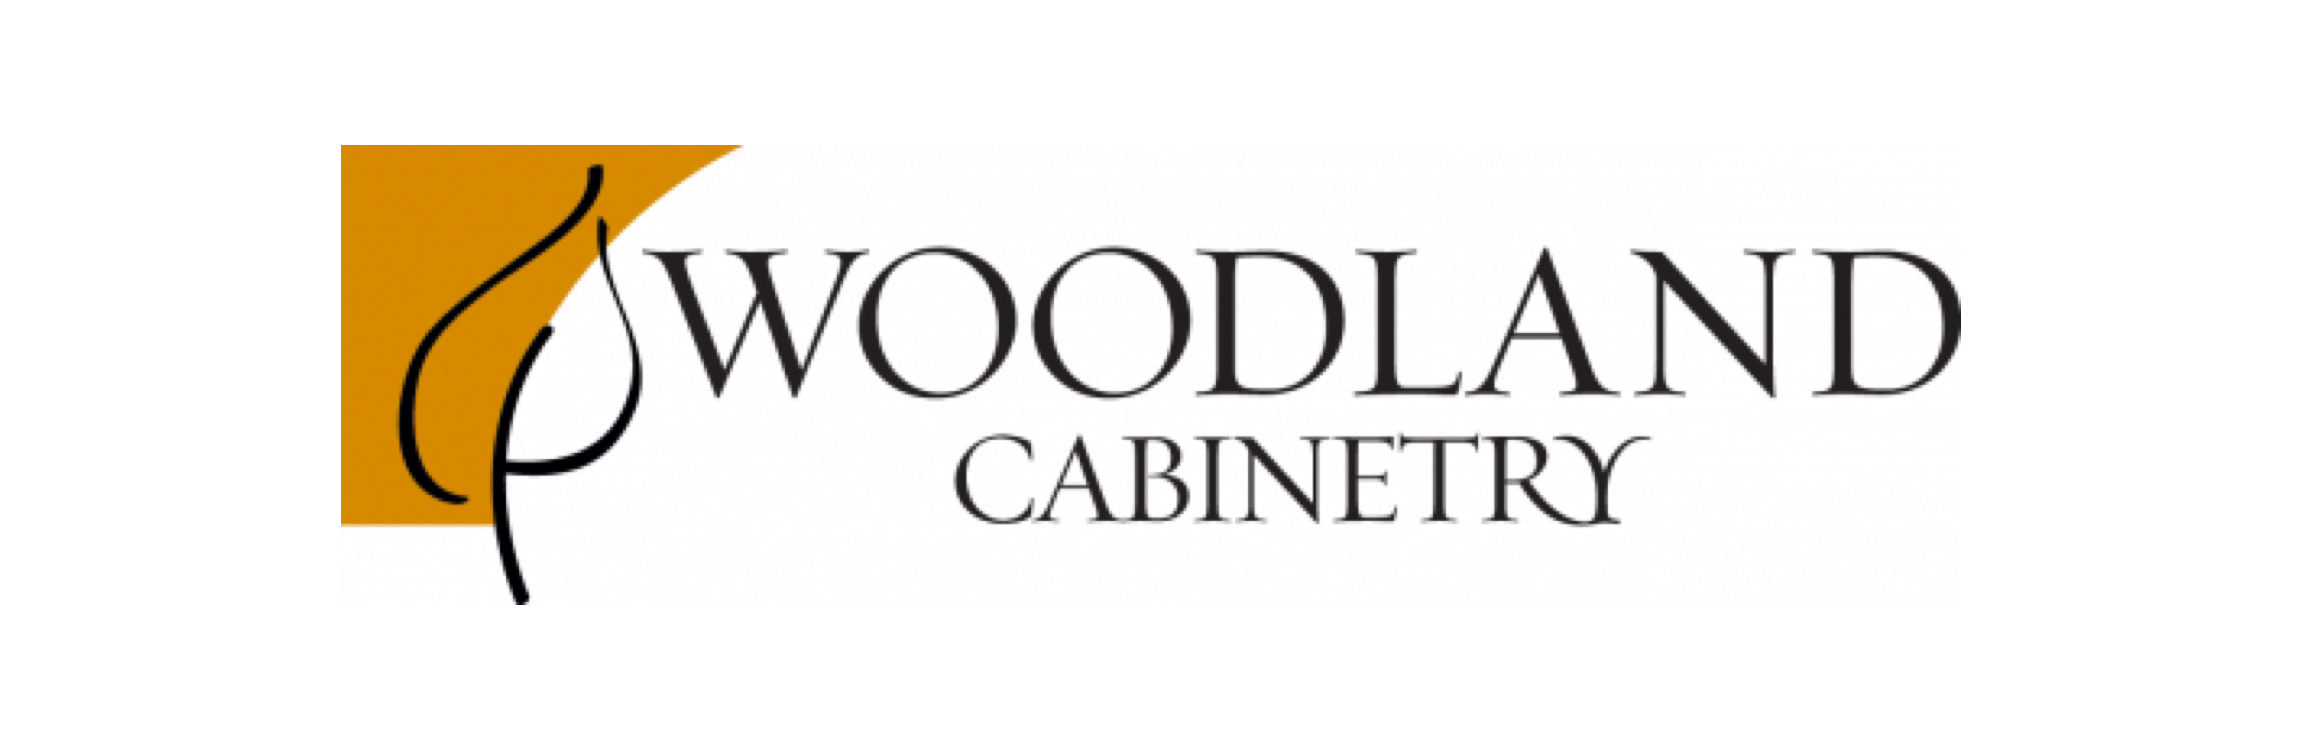 woodland cabinetry.png